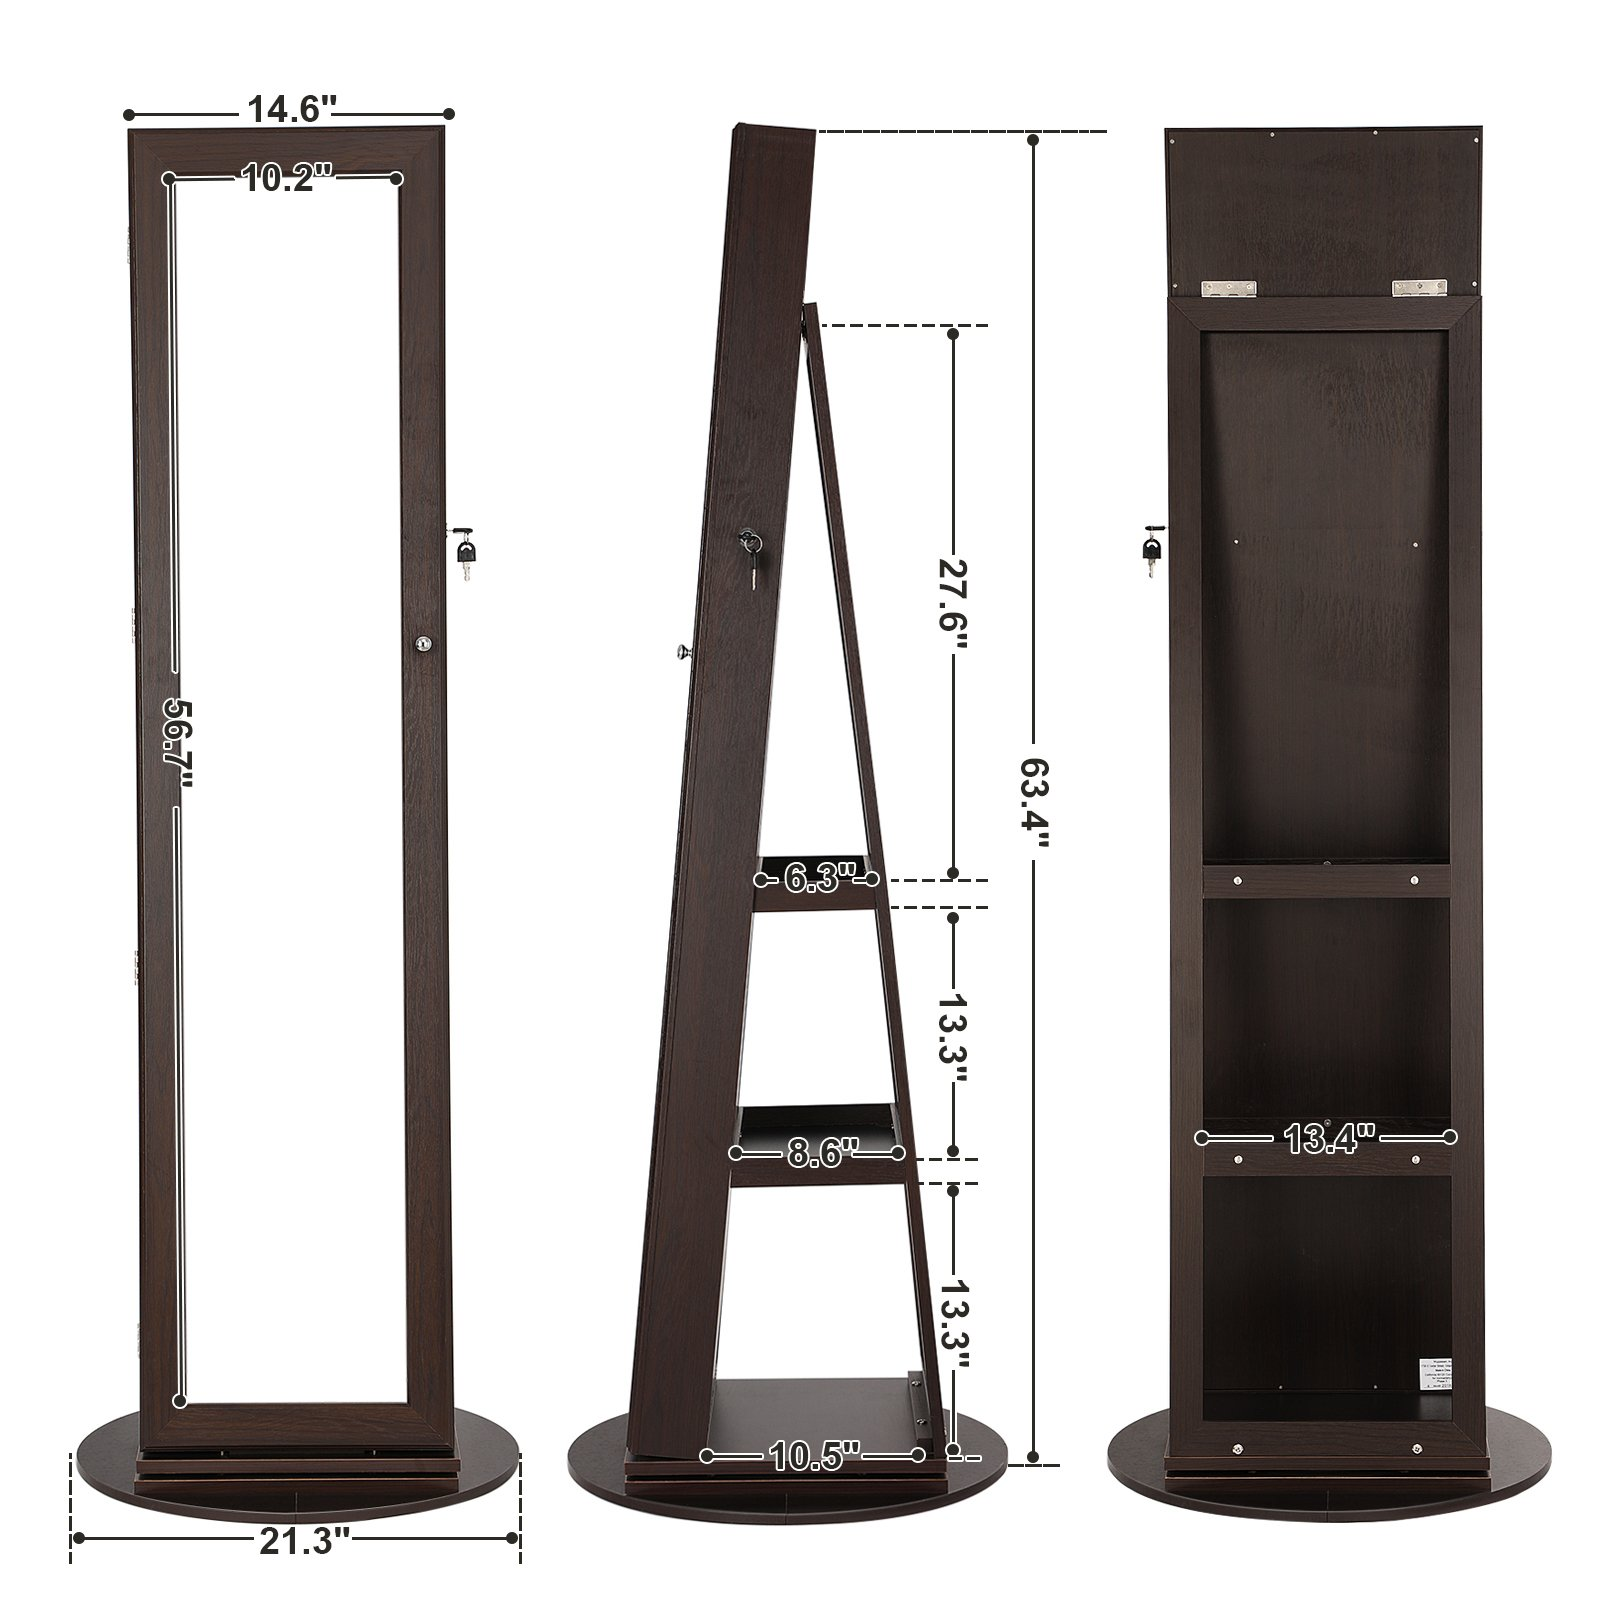 SONGMICS Jewelry Cabinet Armoire 360° Rotatable Higher Mirror, Lockable Jewelry Organizer Mother's Day Gift UJJC62BR by SONGMICS (Image #7)